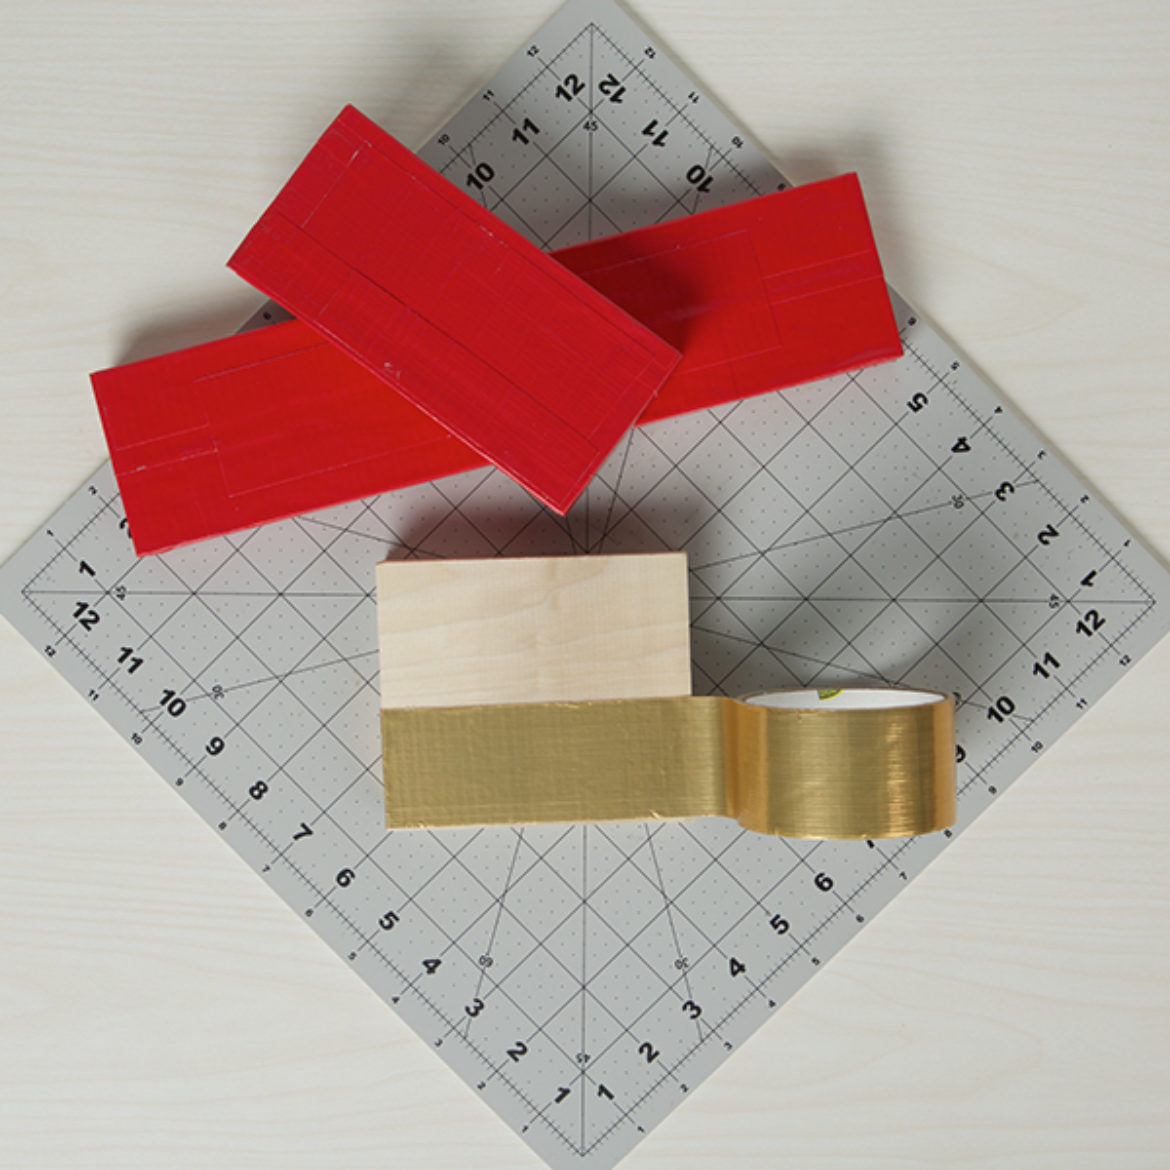 Three blocks covered in red and gold colored Duck Tape